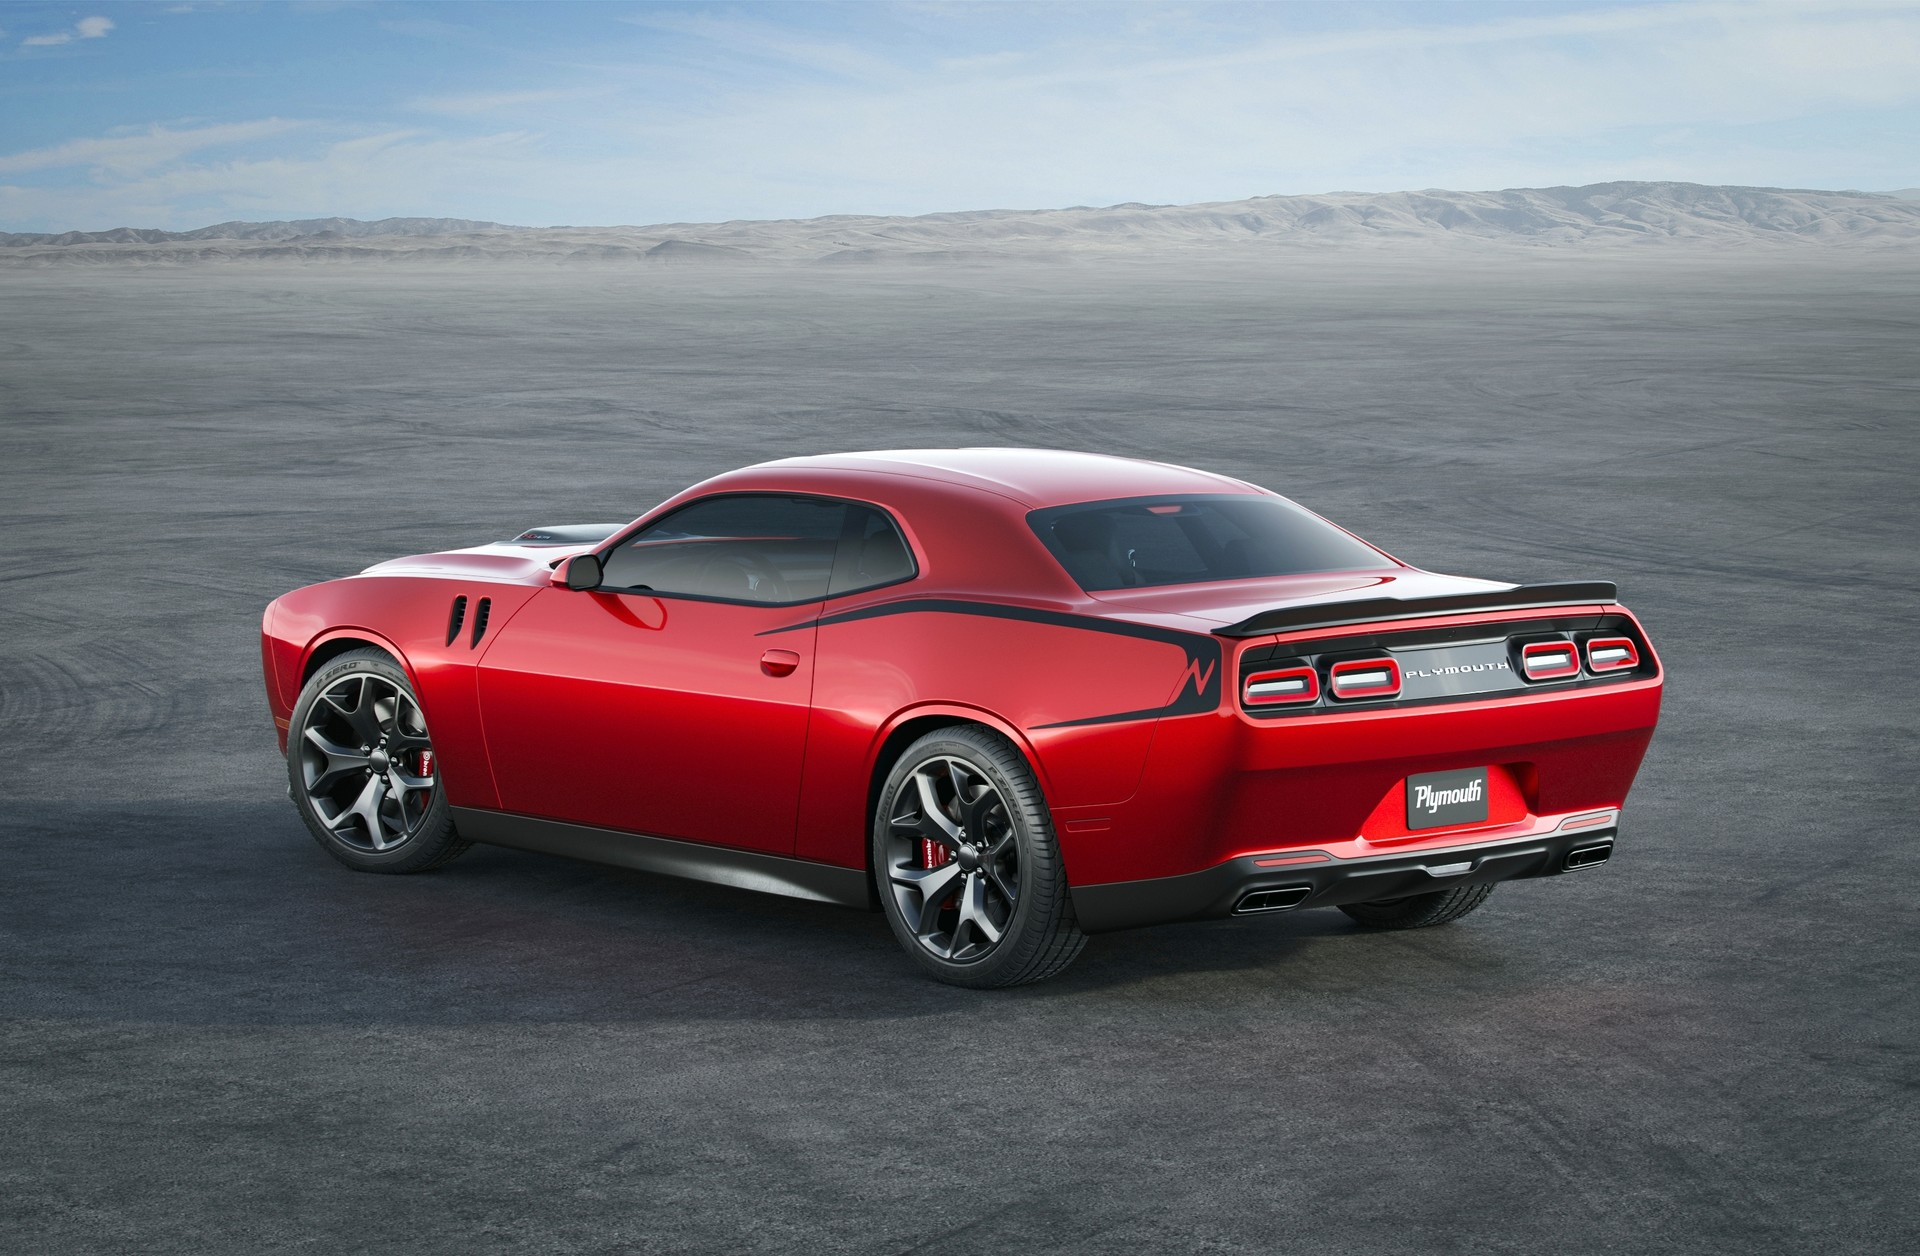 Check Out This Modern Plymouth Barracuda Rendering Based On The